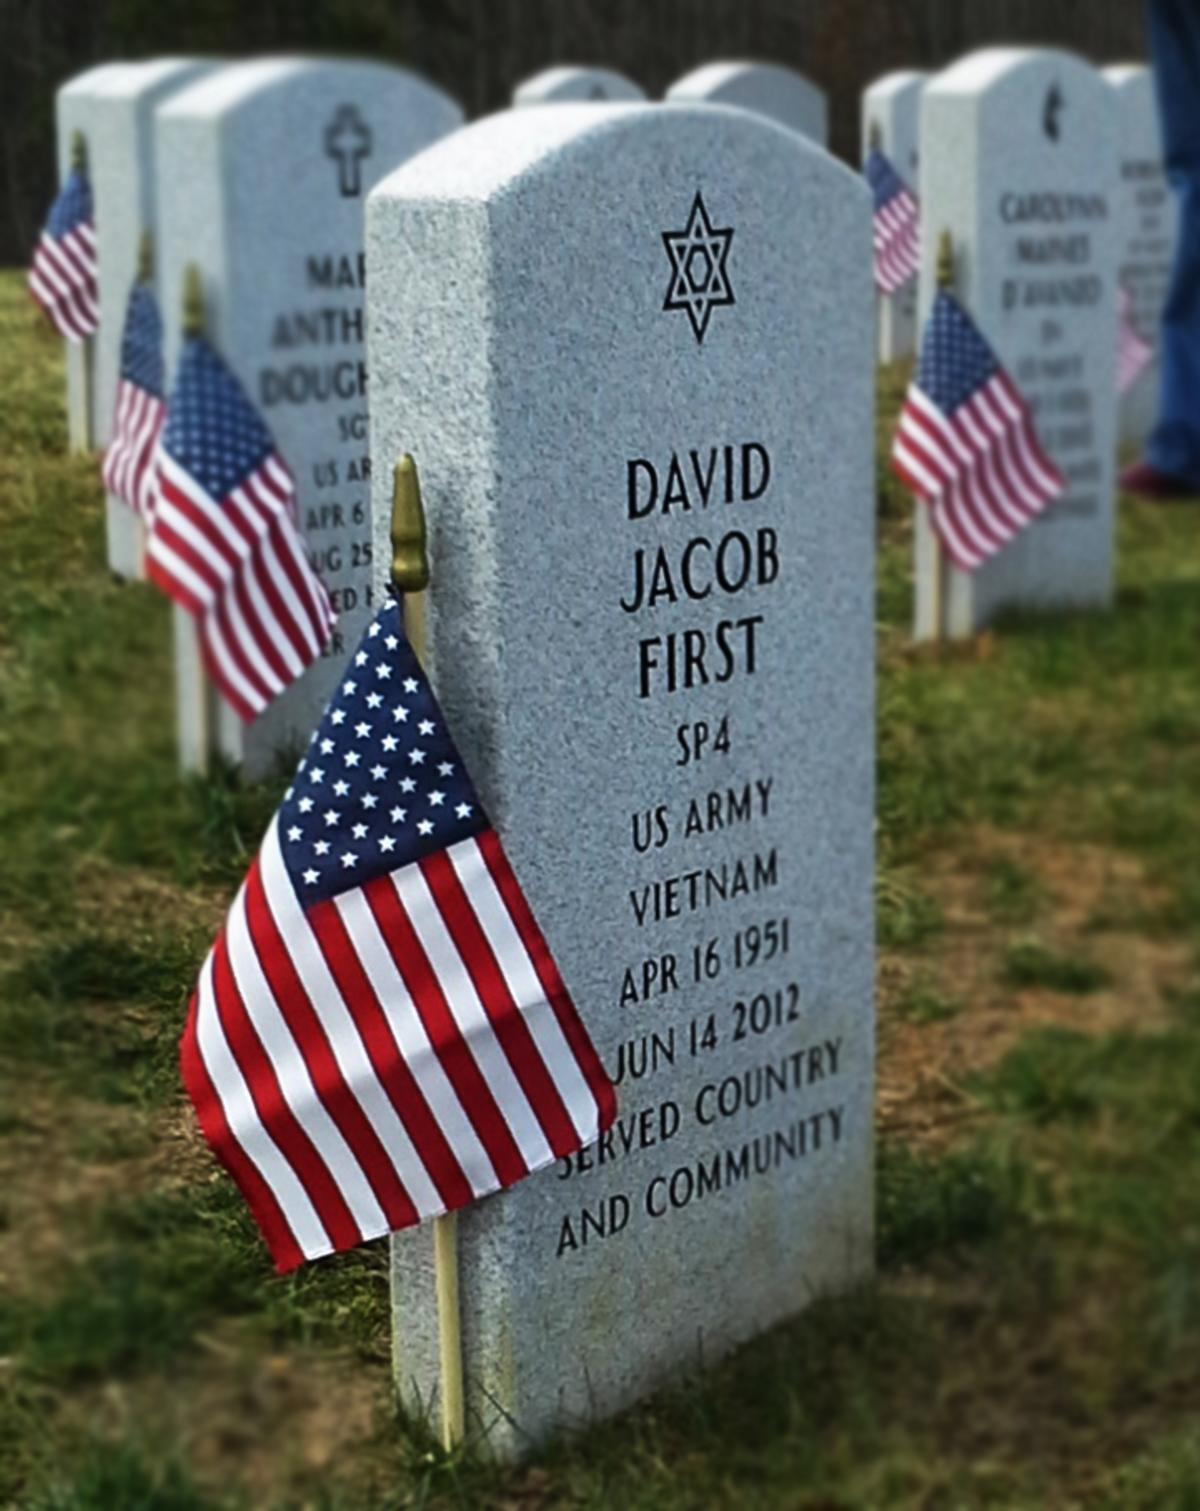 headstones at a cemetery with American flags next to the headstones